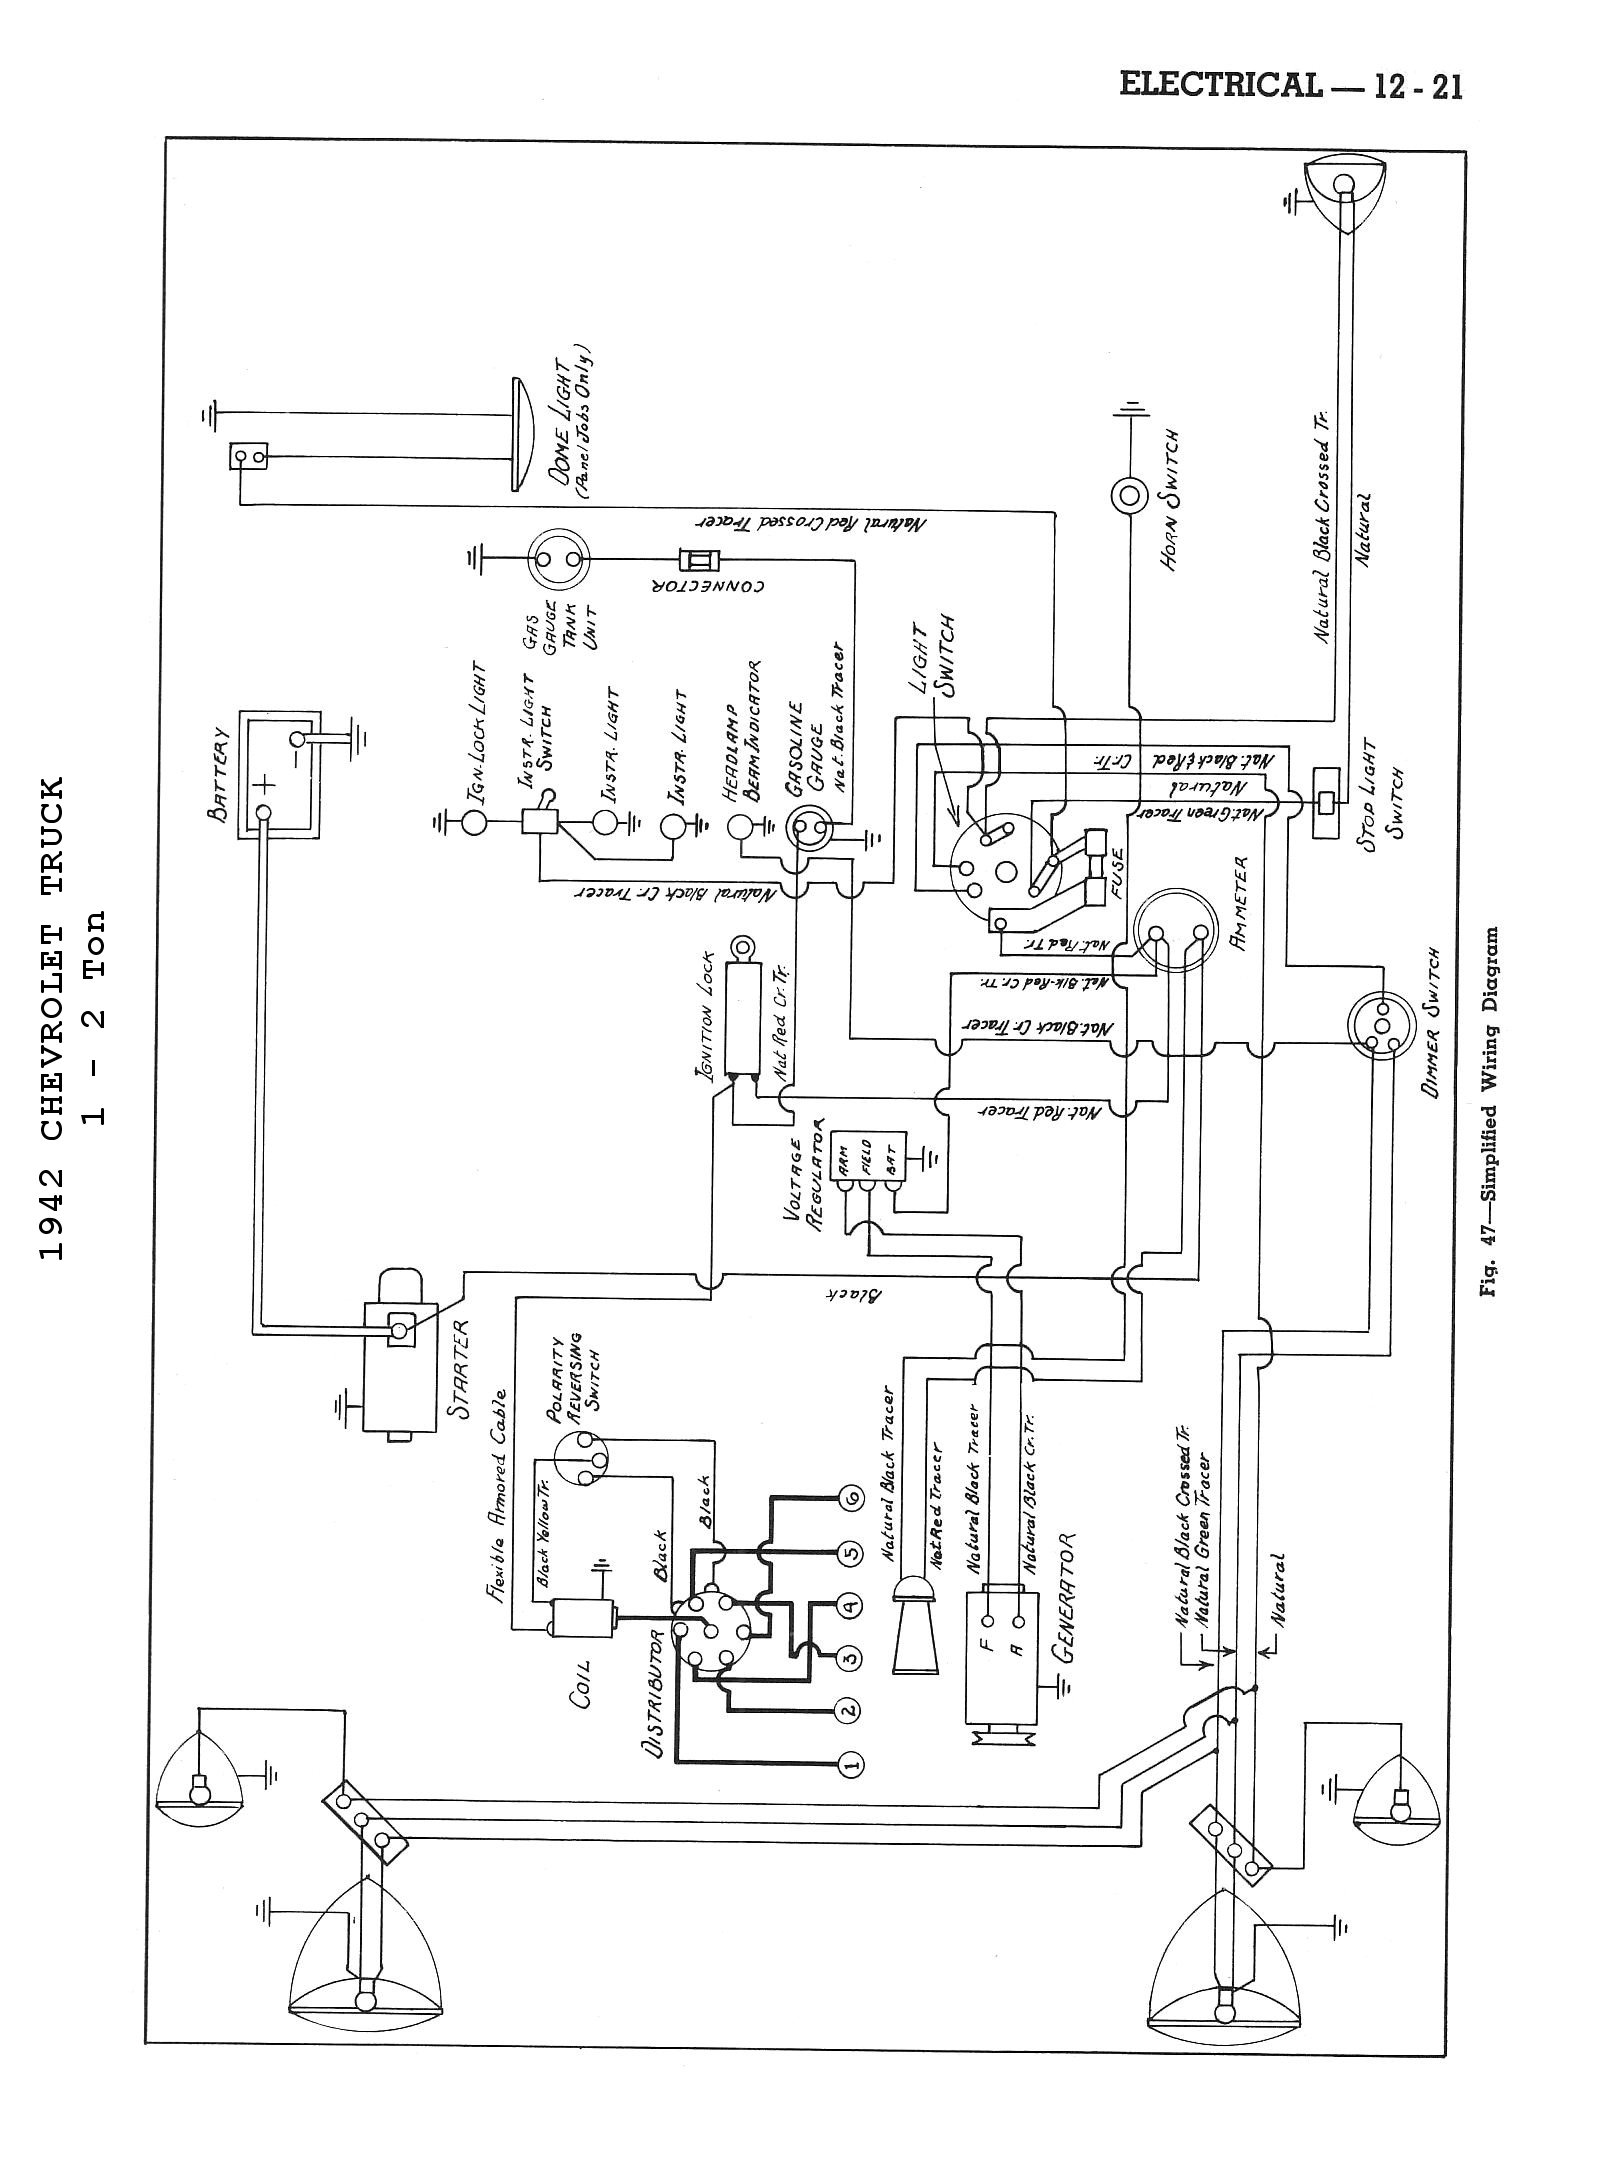 1955 Chevy Turn Signal Wiring Diagram Third Level 1956 Diagrams 1942 Body 4x2